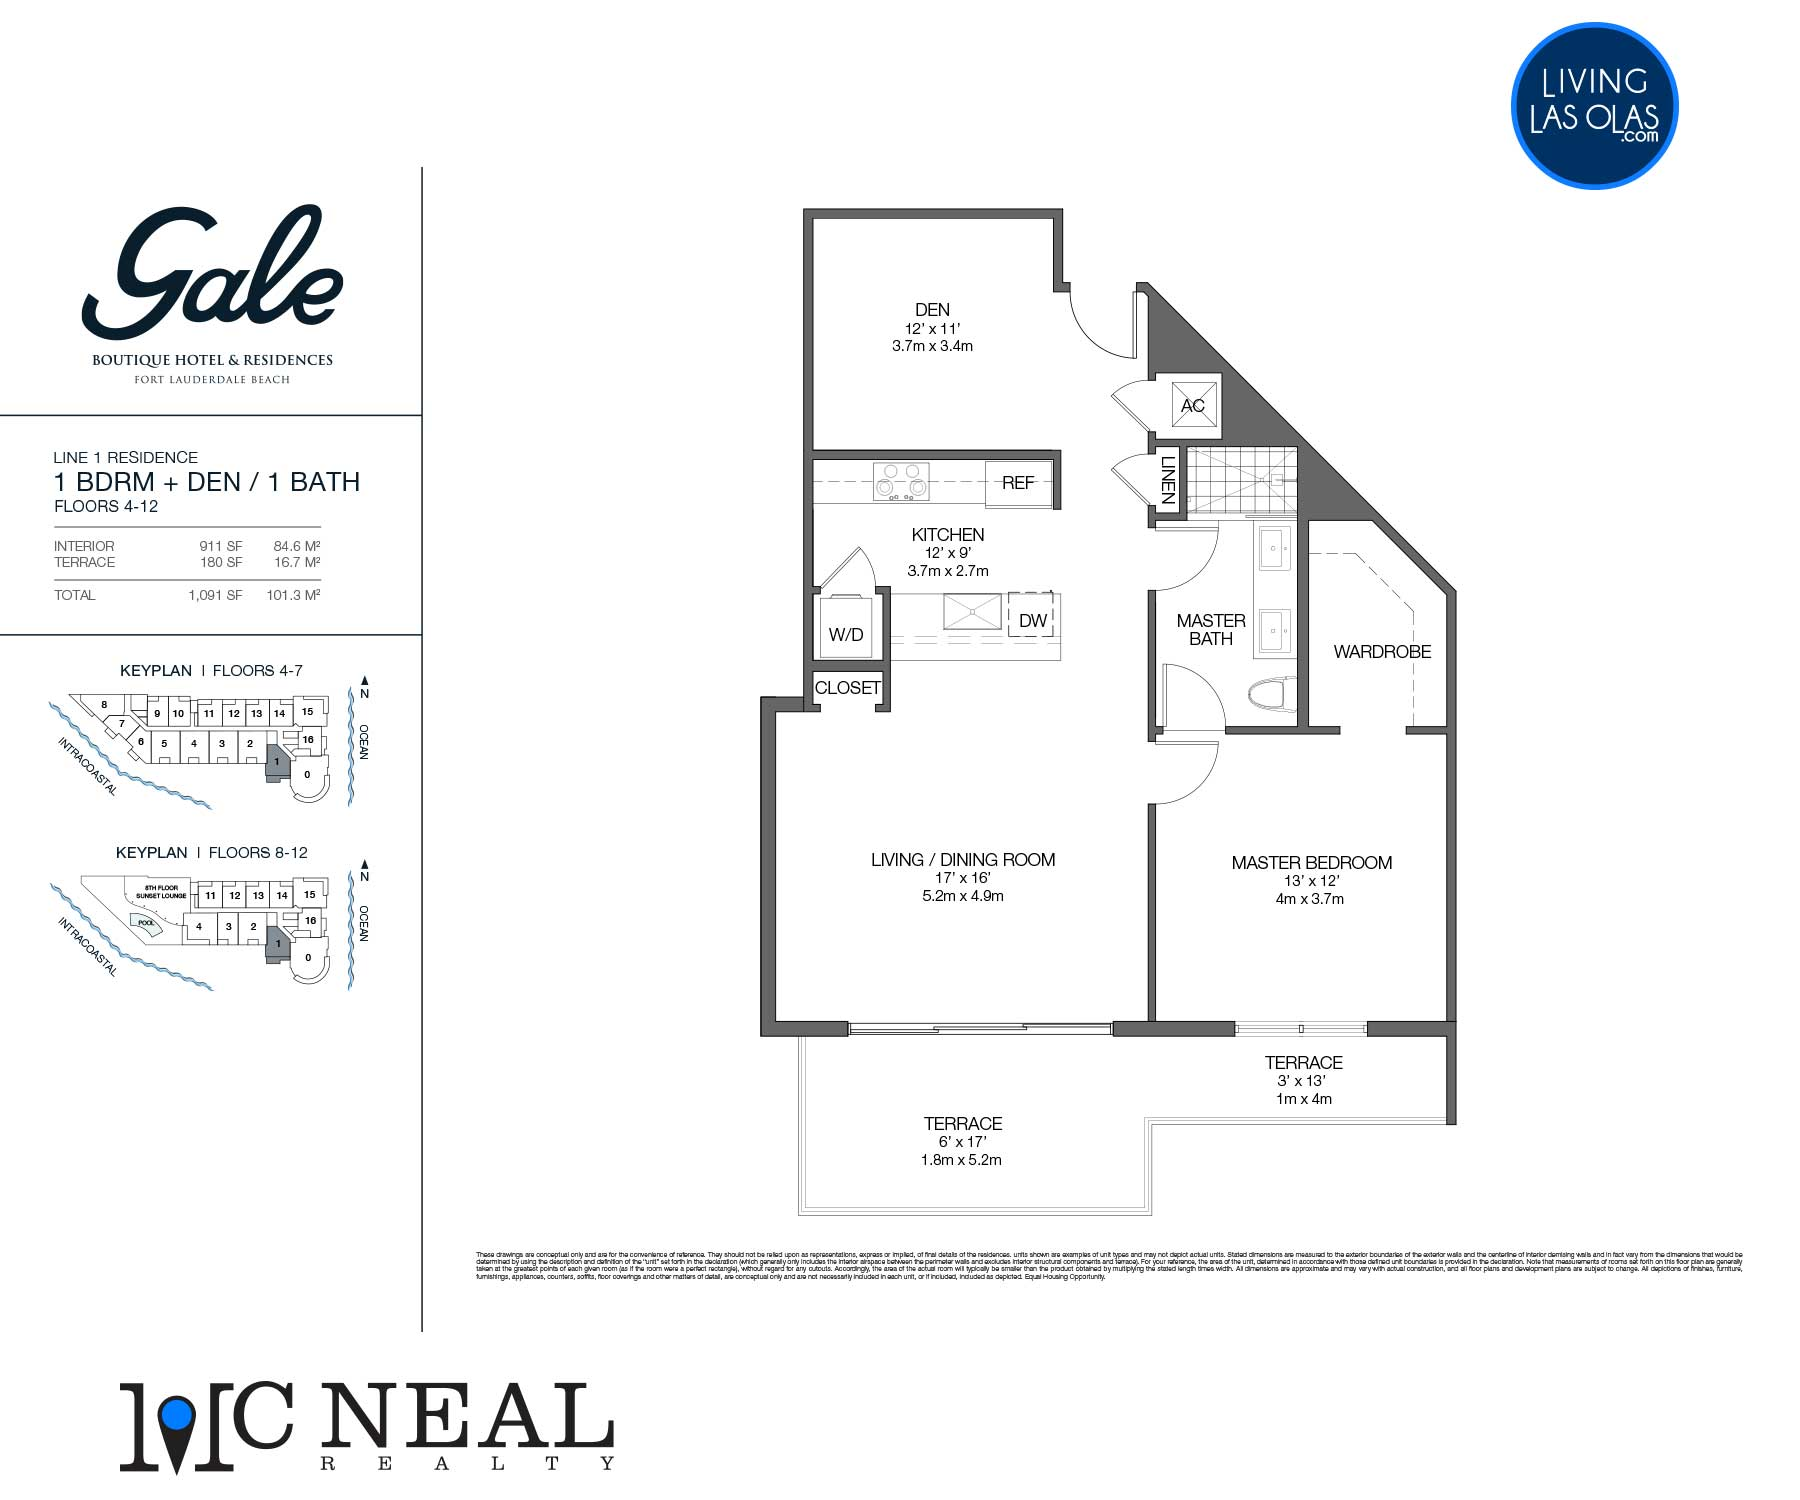 Tiffany House Condos Floor Plans Line 1